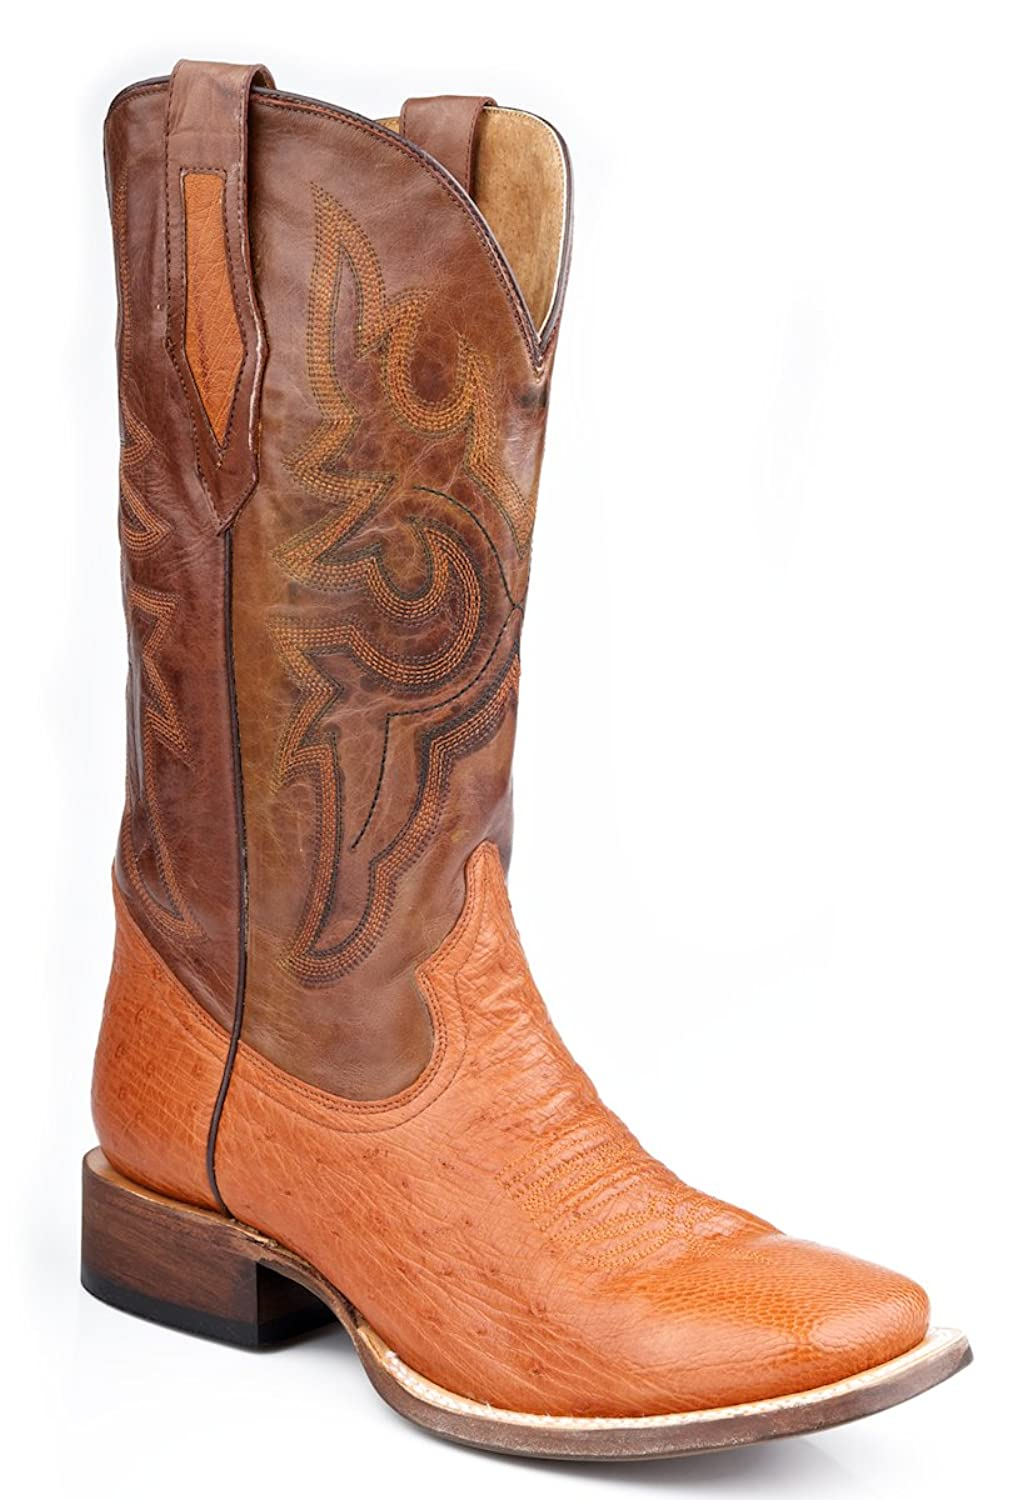 Roper Mens Exotic Wine Square Toe Smooth Ostrich Skin Cowboy Boots 11.5 EE